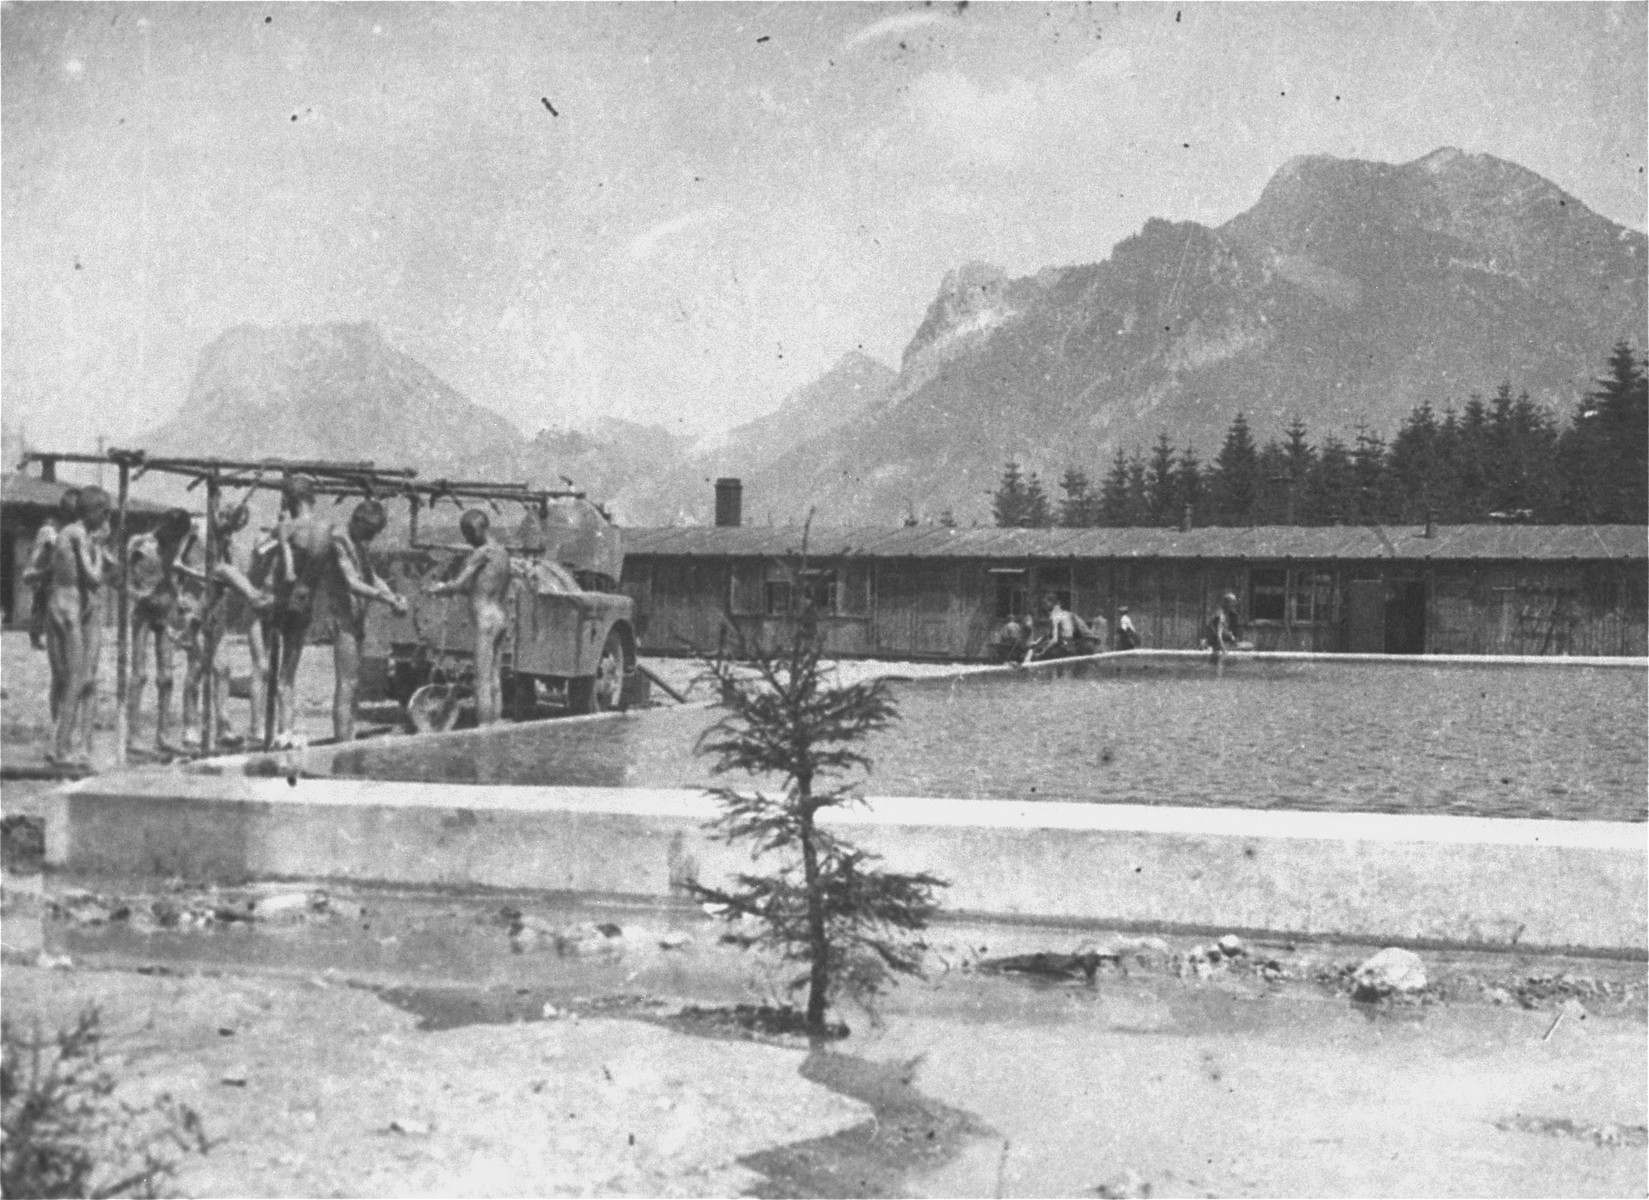 Survivors in the Ebensee concentration camp wash themselves at a portable shower installed by American personnel from the 30th U.S. Army Field Hospital.